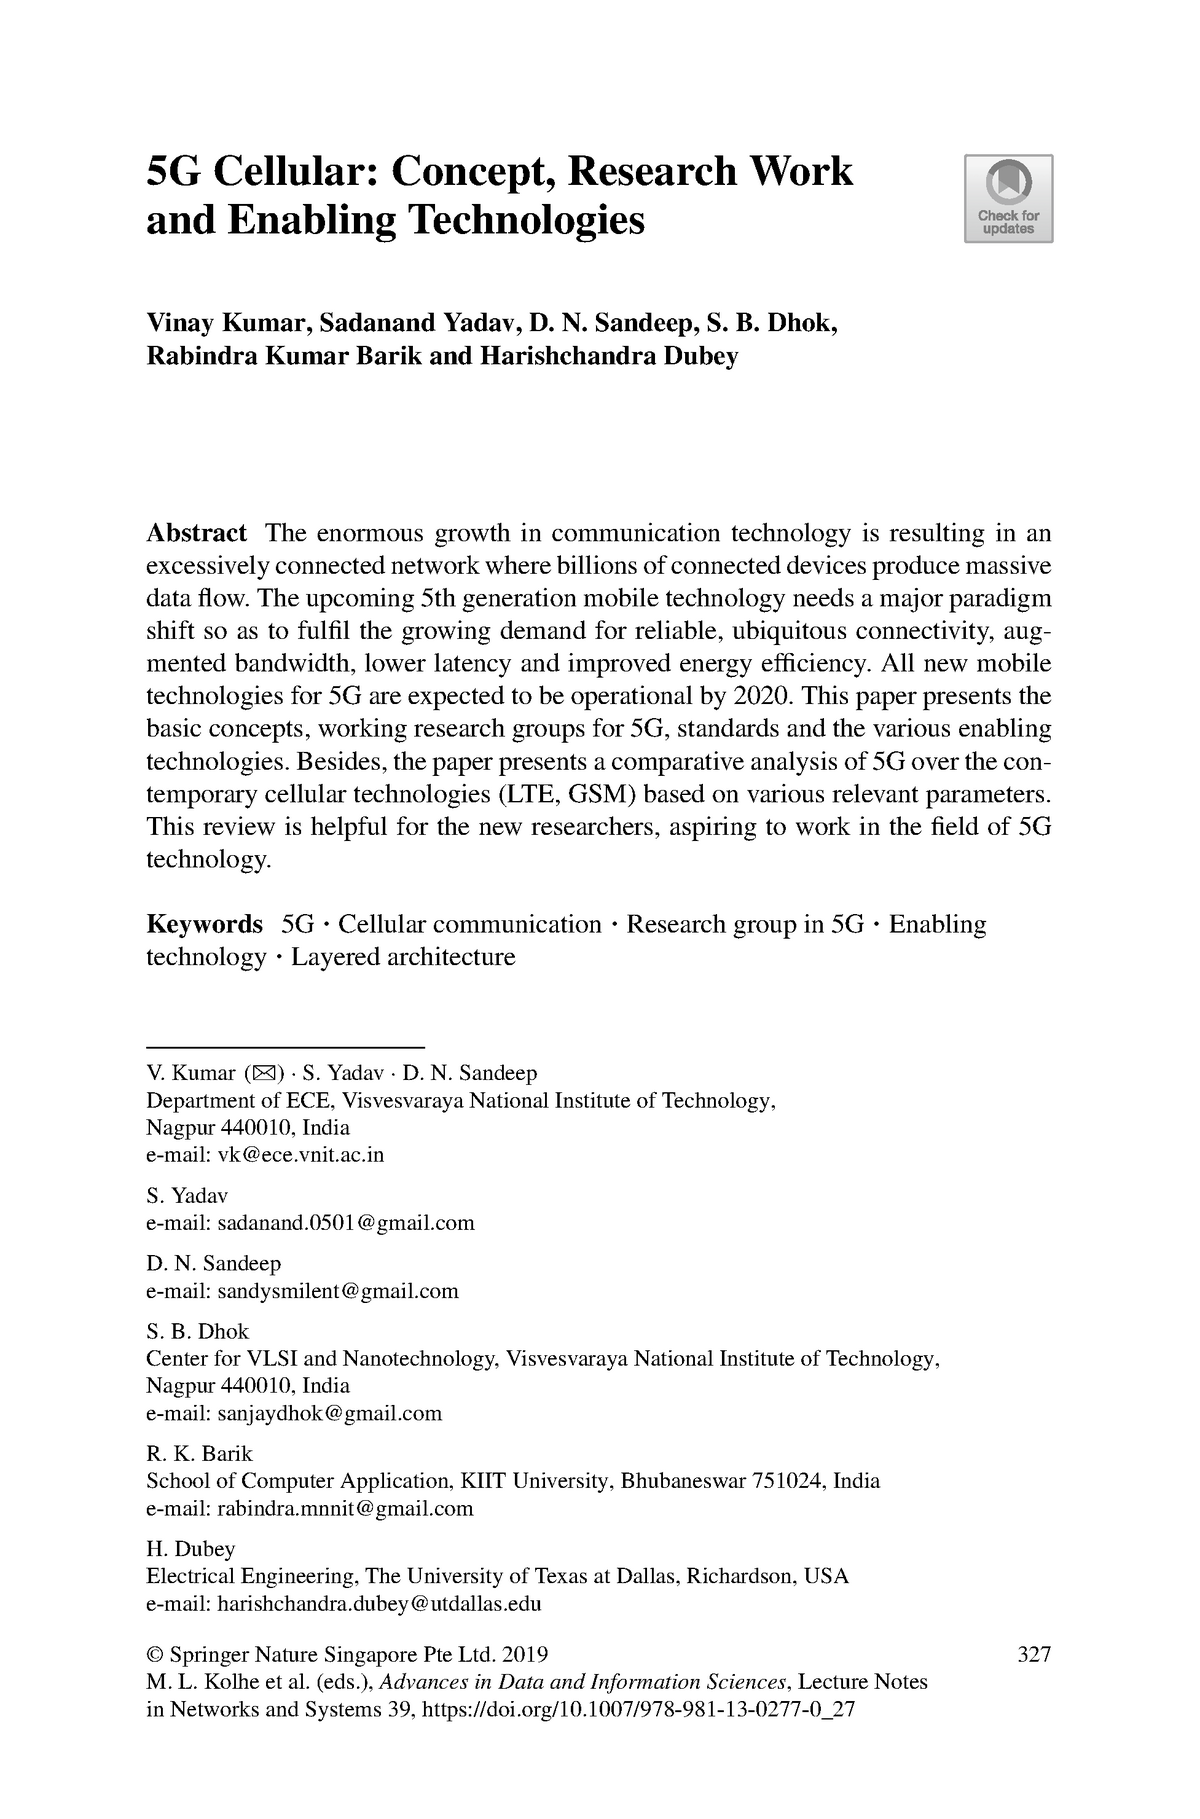 5G Cellular Concept Research Work and Enabling Technologies